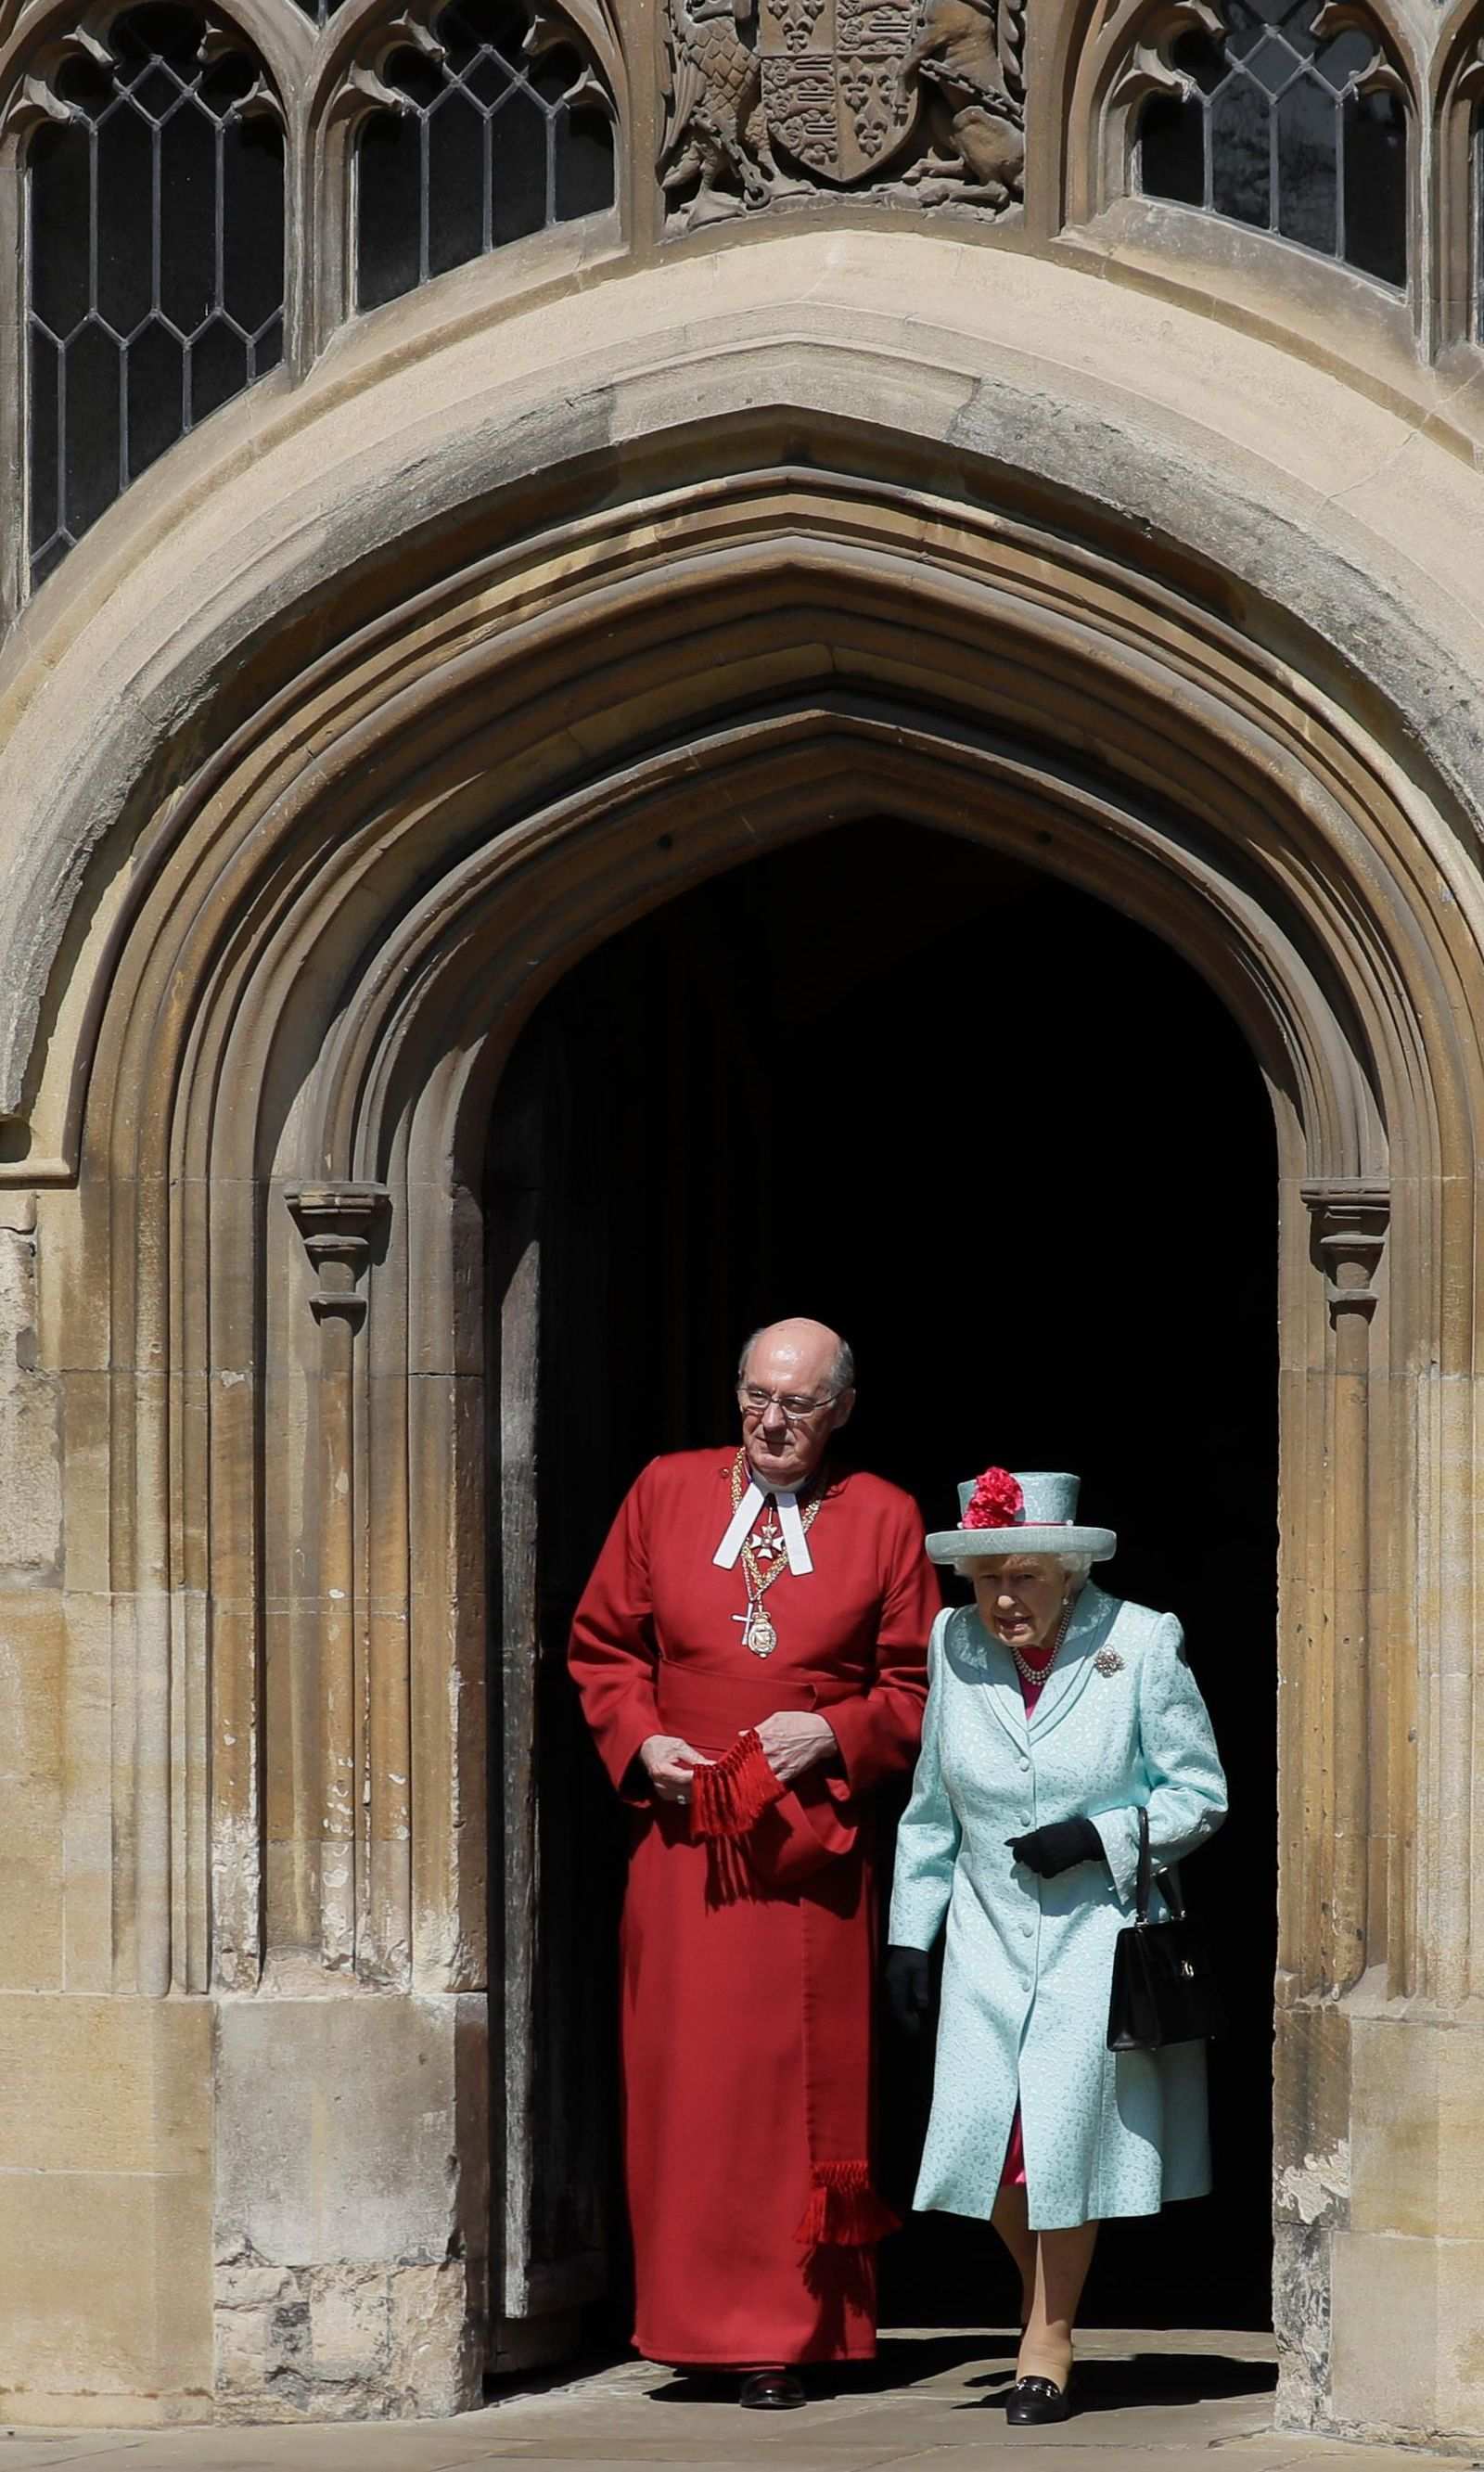 Britain's Queen Elizabeth II leaves after attending the Easter Mattins Service at St. George's Chapel, at Windsor Castle in England Sunday, April 21, 2019. (AP Photo/Kirsty Wigglesworth, pool)